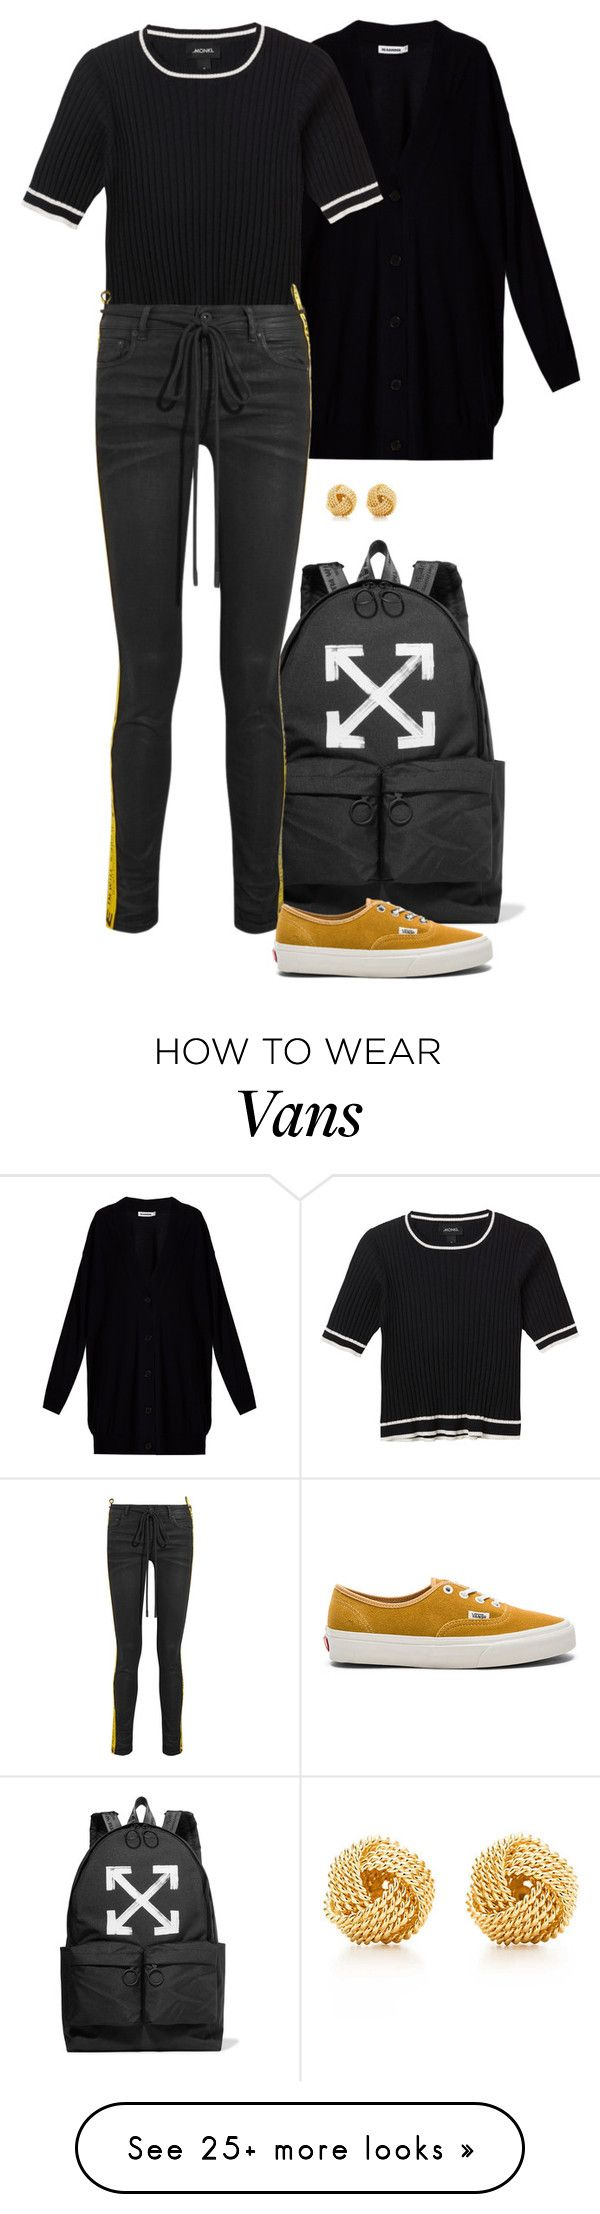 """Realyn."" by foreverforbiddenromancefashion on Polyvore featuring Jil Sander, Off-White, Monki, Vans and Tiffany & Co."